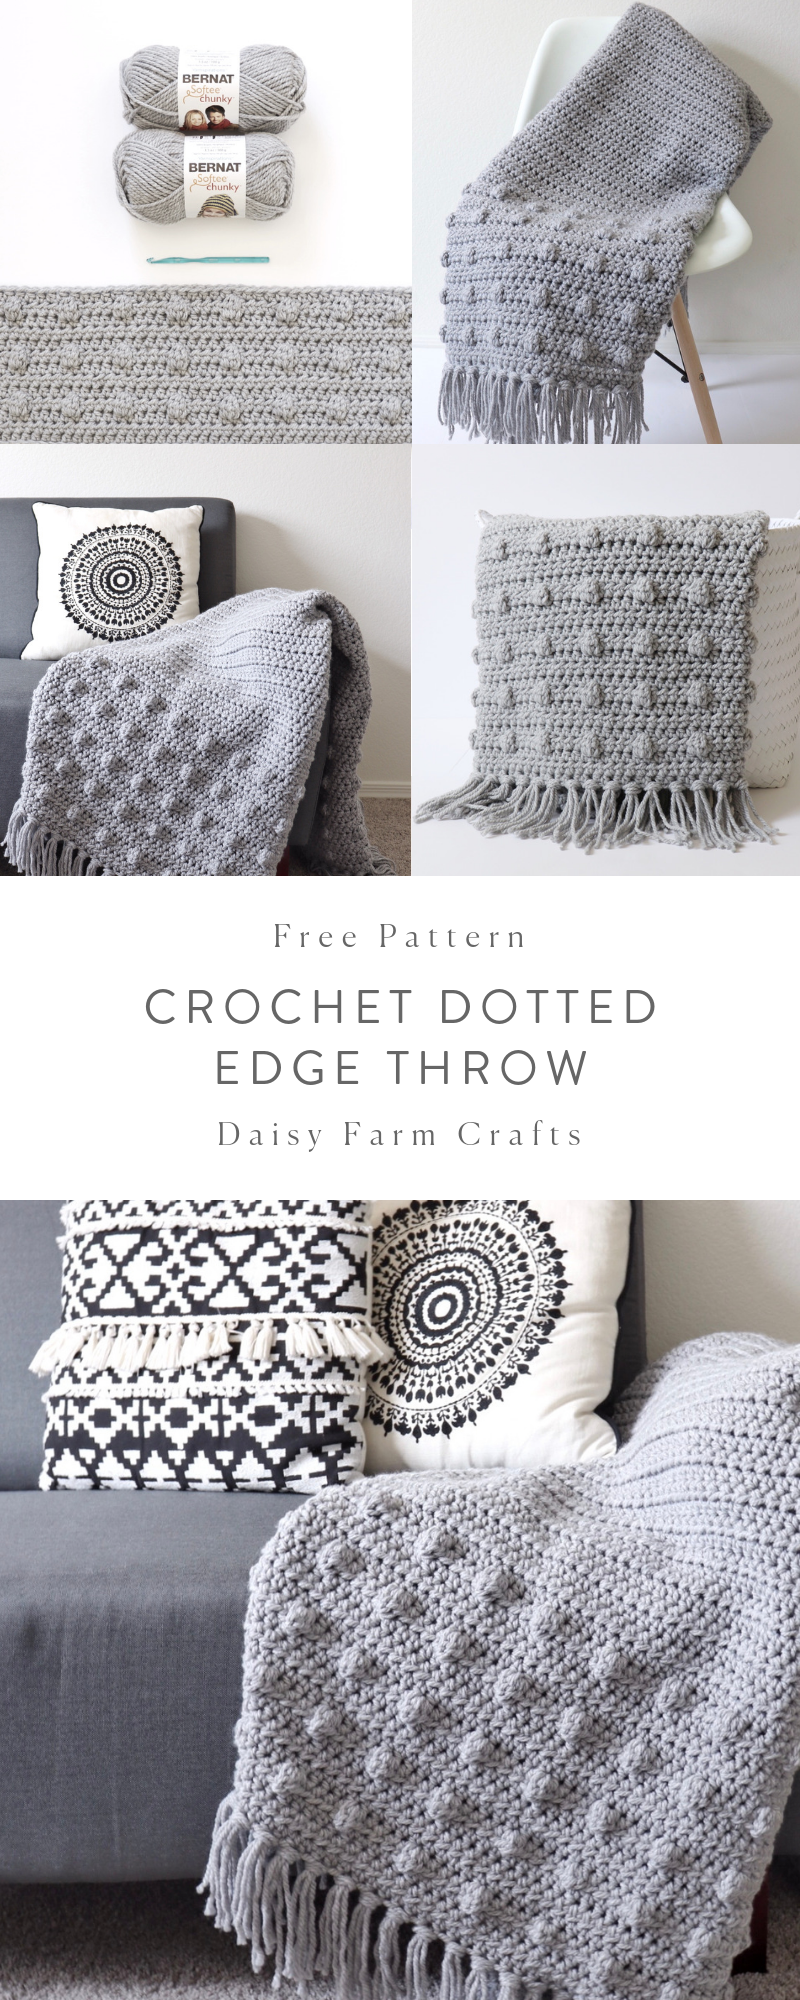 Free Crochet Pattern - Crochet Dotted Edge Throw | crochet ...